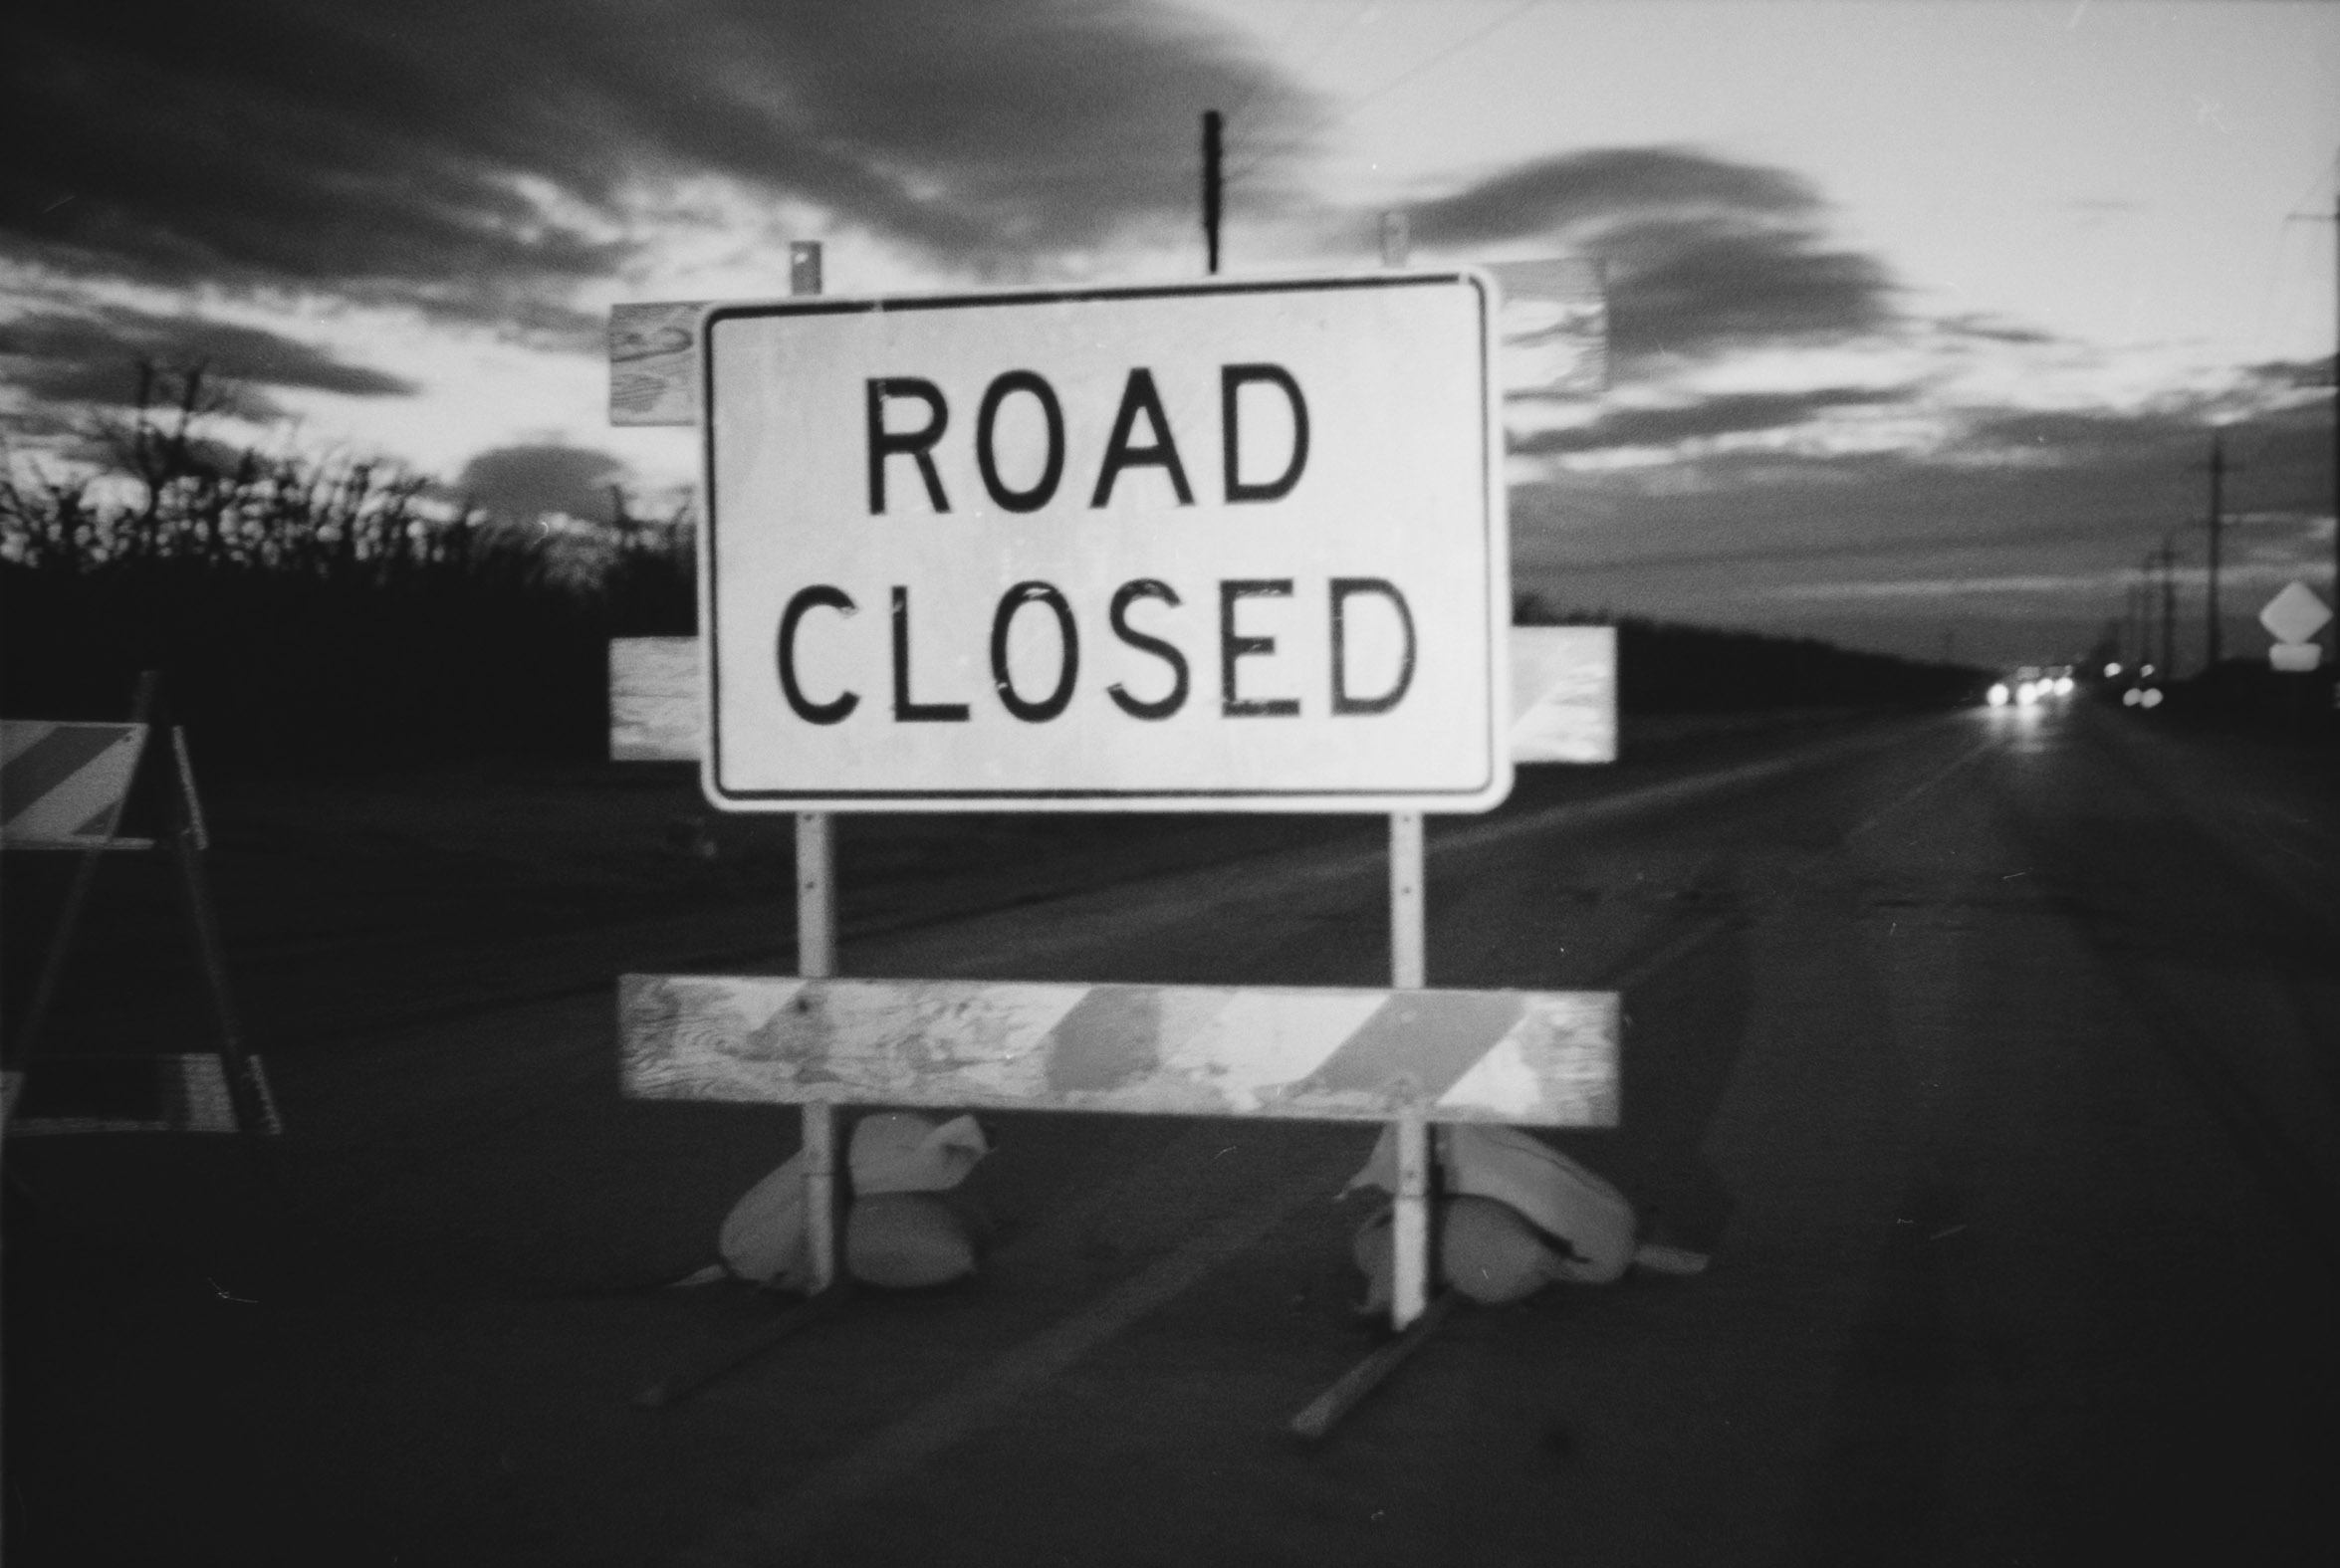 ROAD_CLOSED_BW